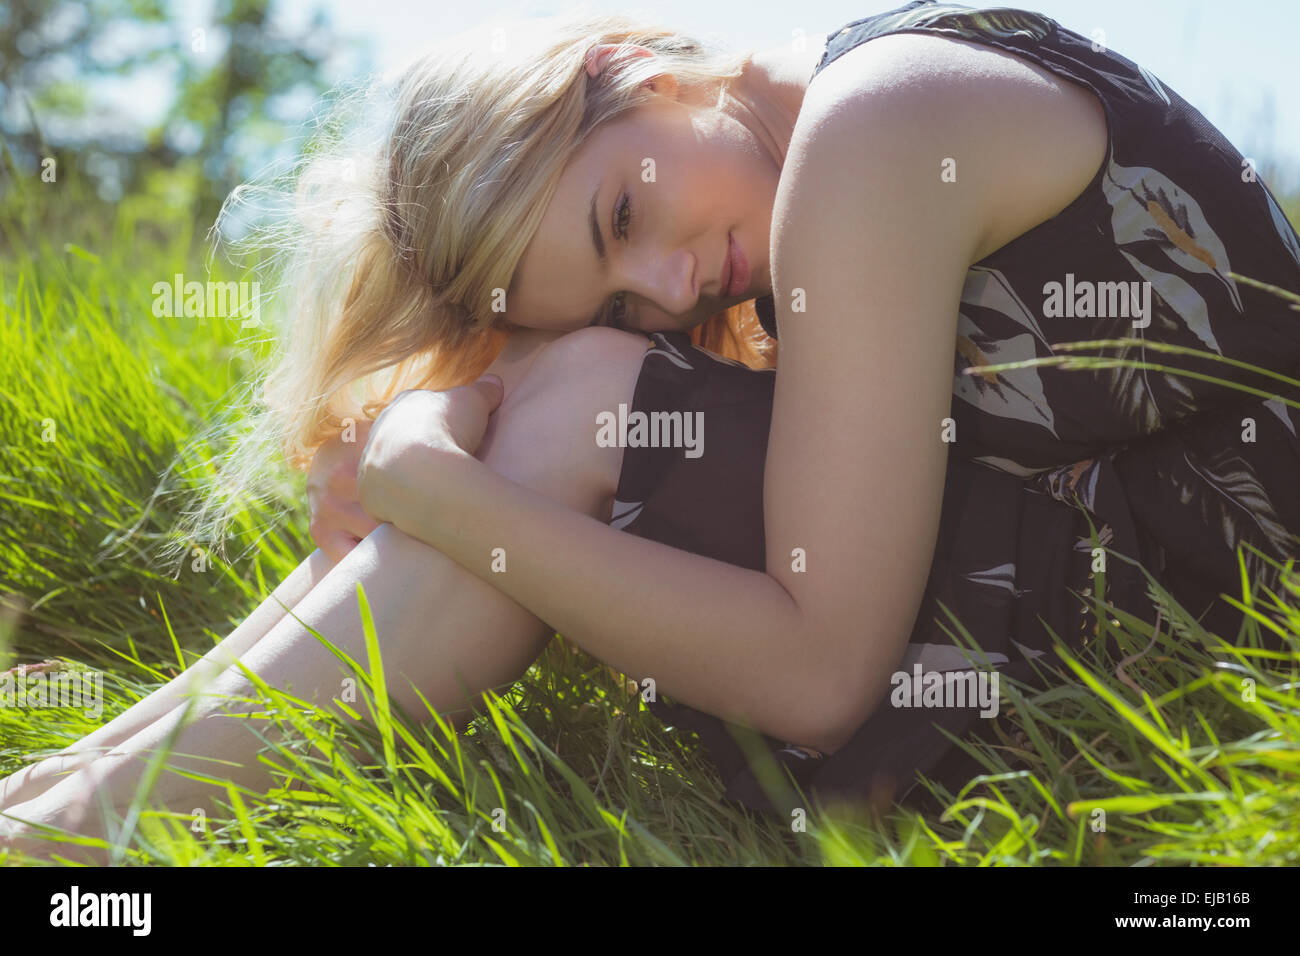 Pretty blonde in sundress sitting on grass - Stock Image